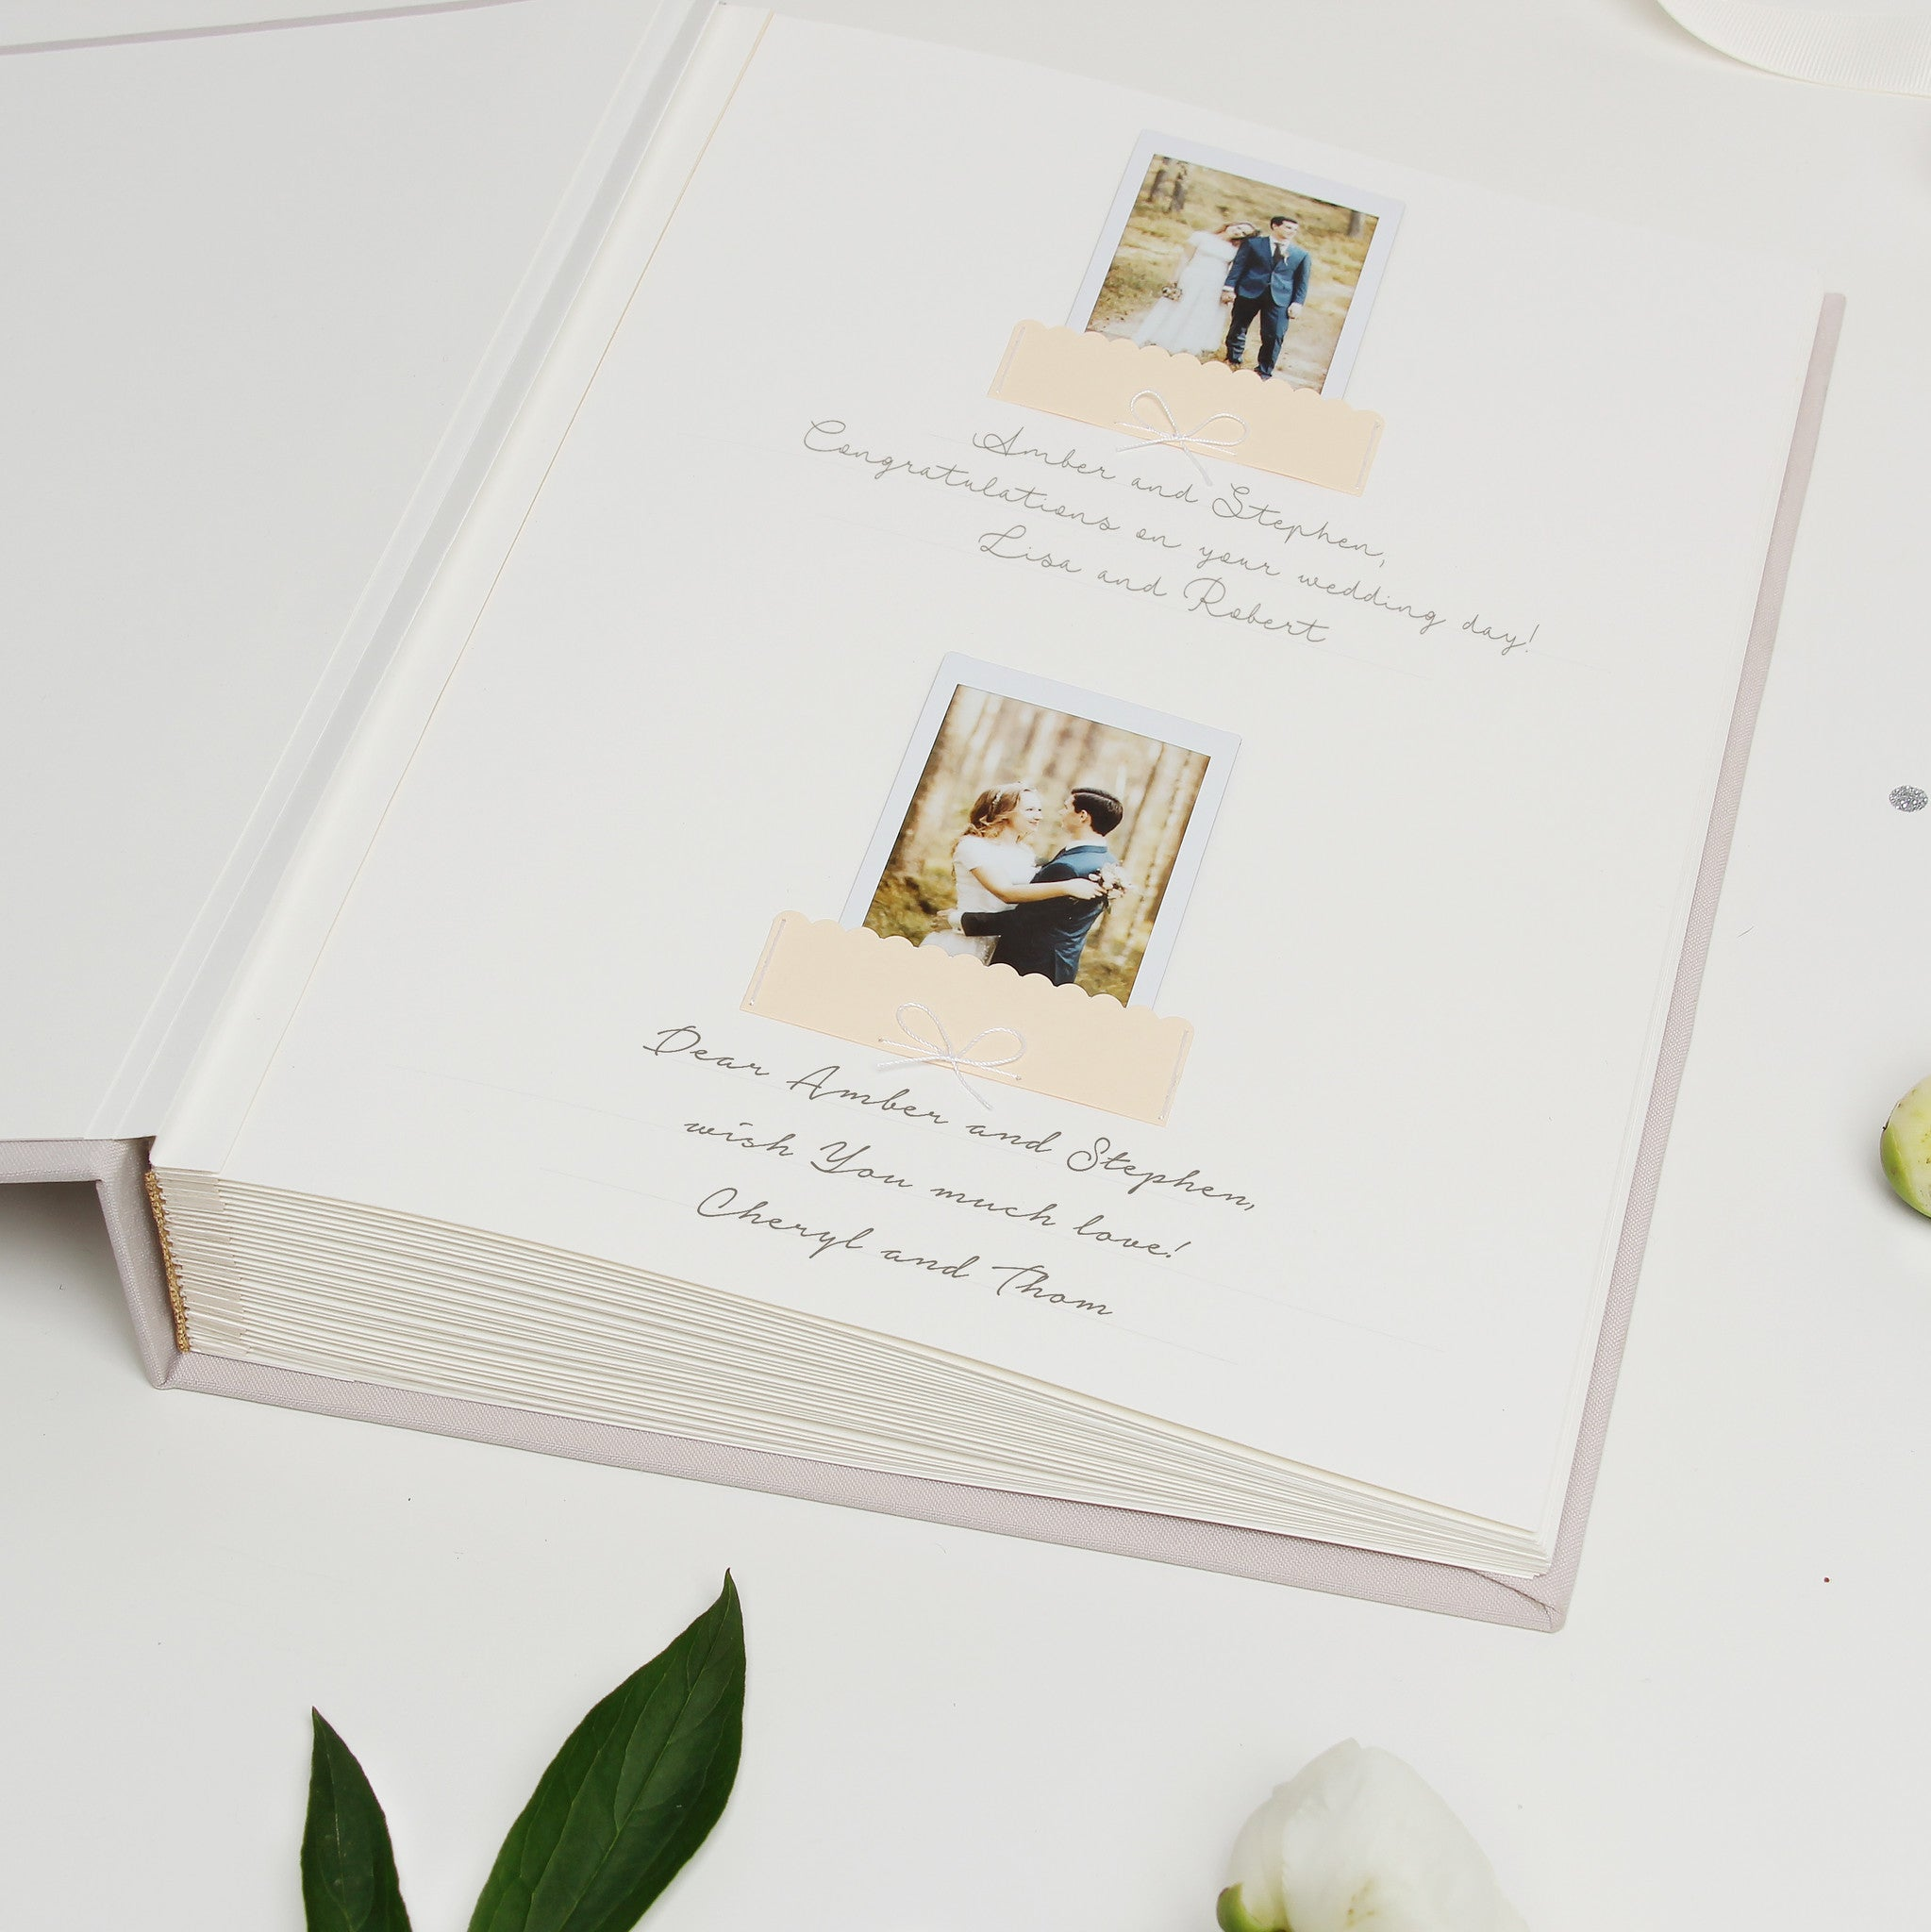 Guest Book Sign in Book Instant Album Cream with Silver Glitter Lettering, Birthday Album by Liumy - Liumy